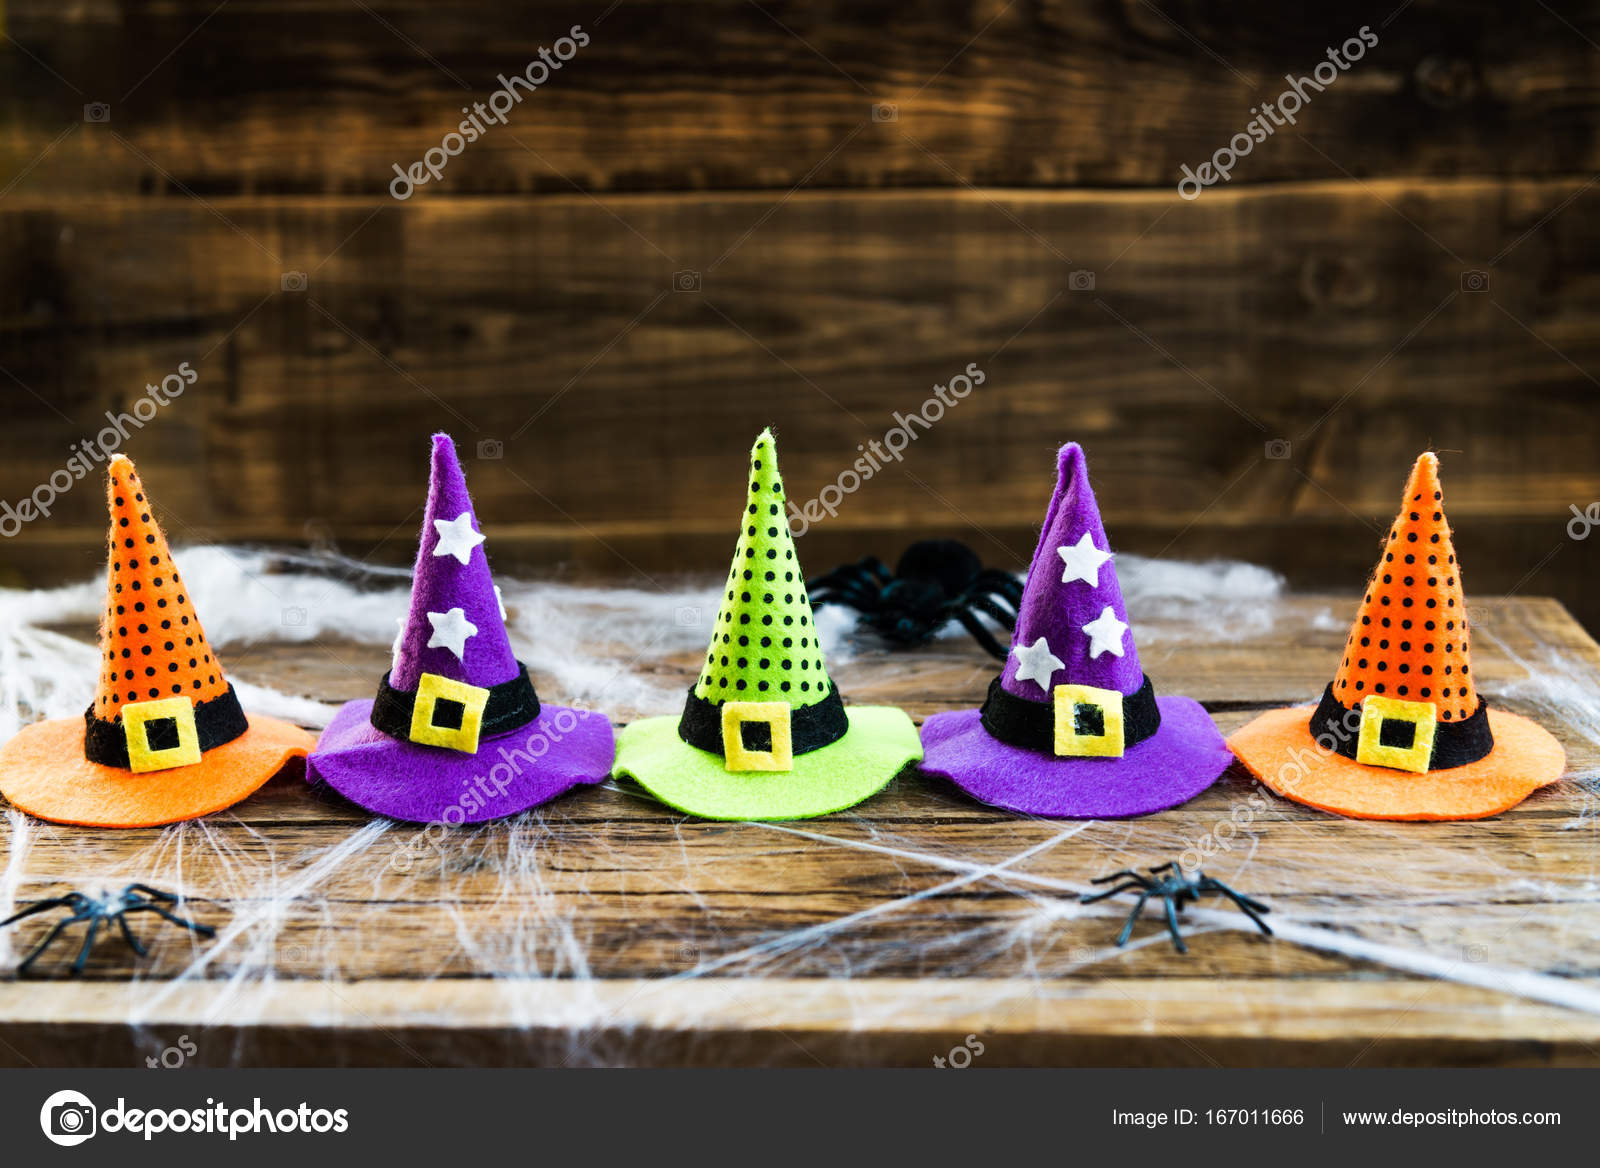 da0bc8f28e0 Halloween card concept with cute little witch hats on spider web ...